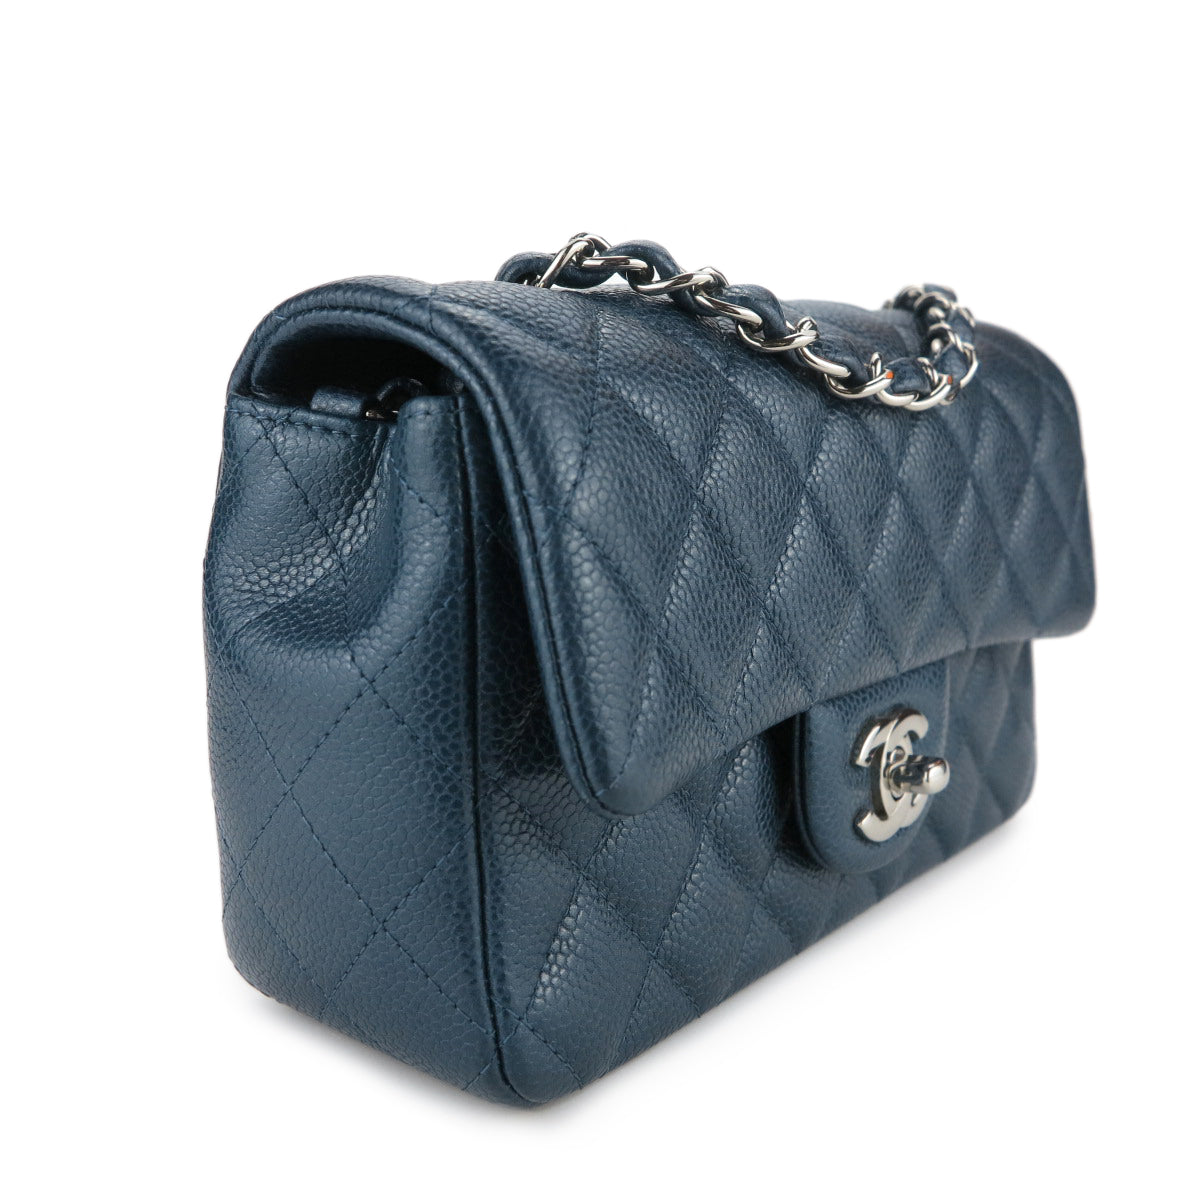 e35d76dbe04a CHANEL Mini Rectangular Flap Bag in Pearly Blue Caviar | Dearluxe